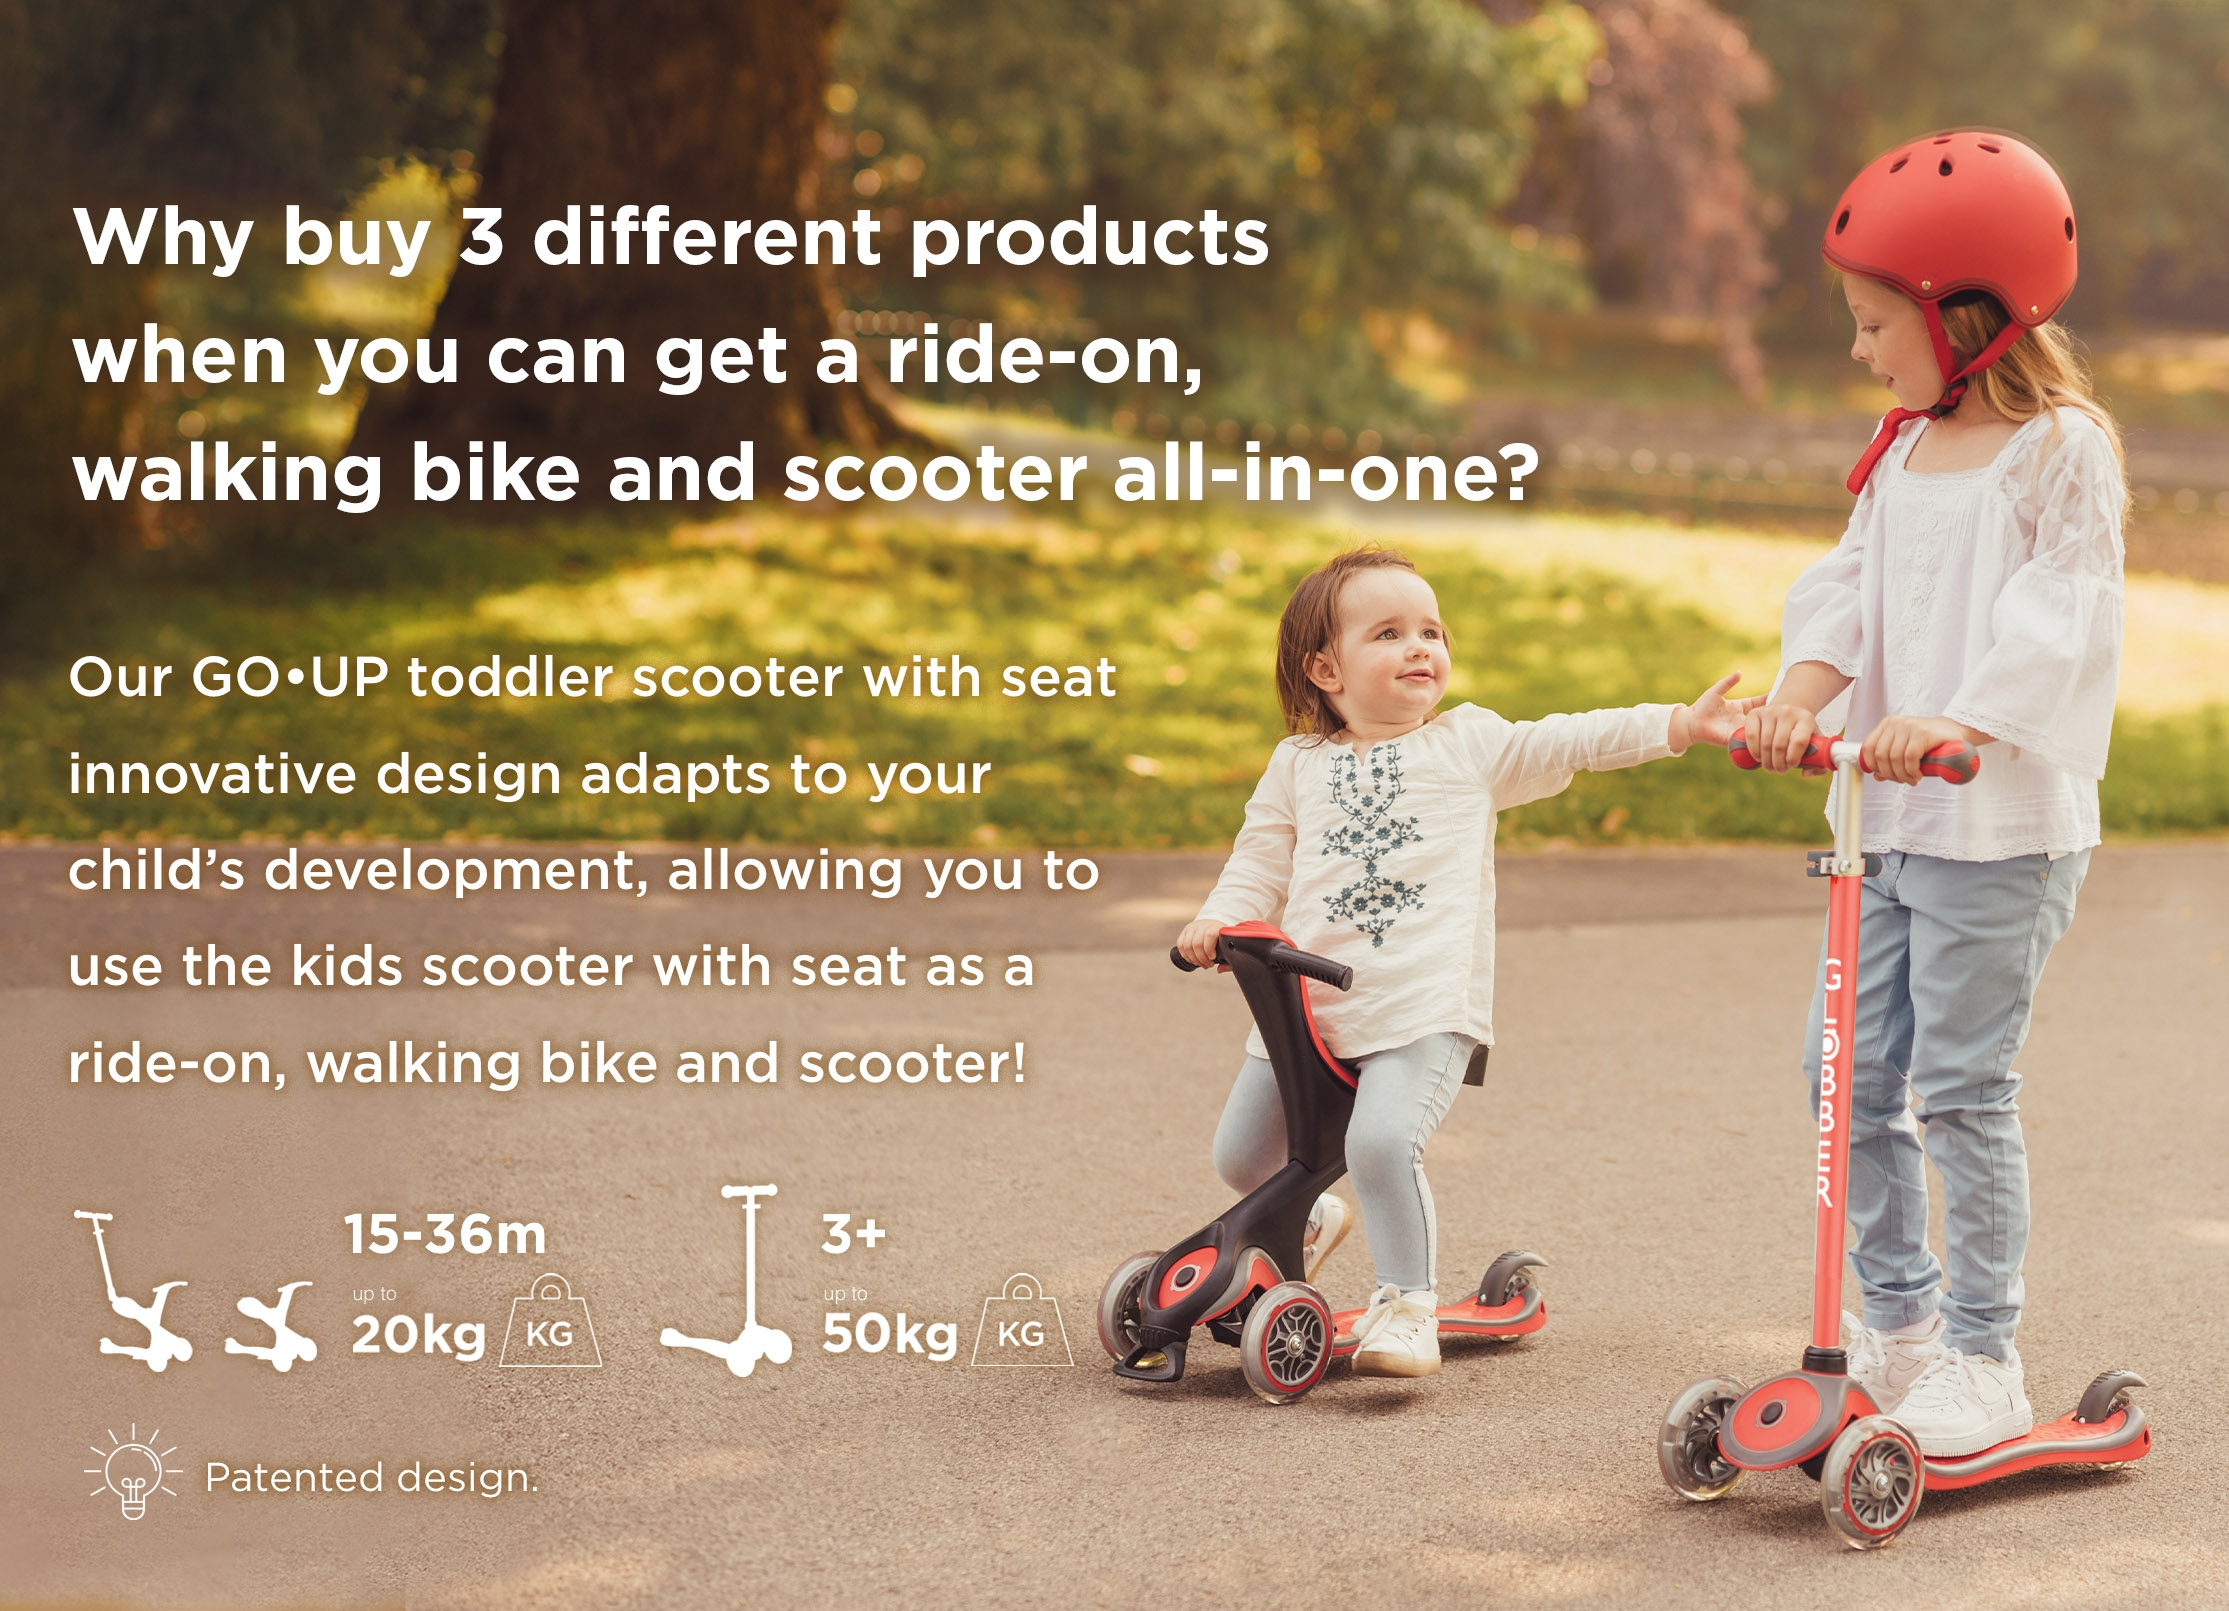 Globber-GO-UP-toddler-scooters-with-seat-innovative-design